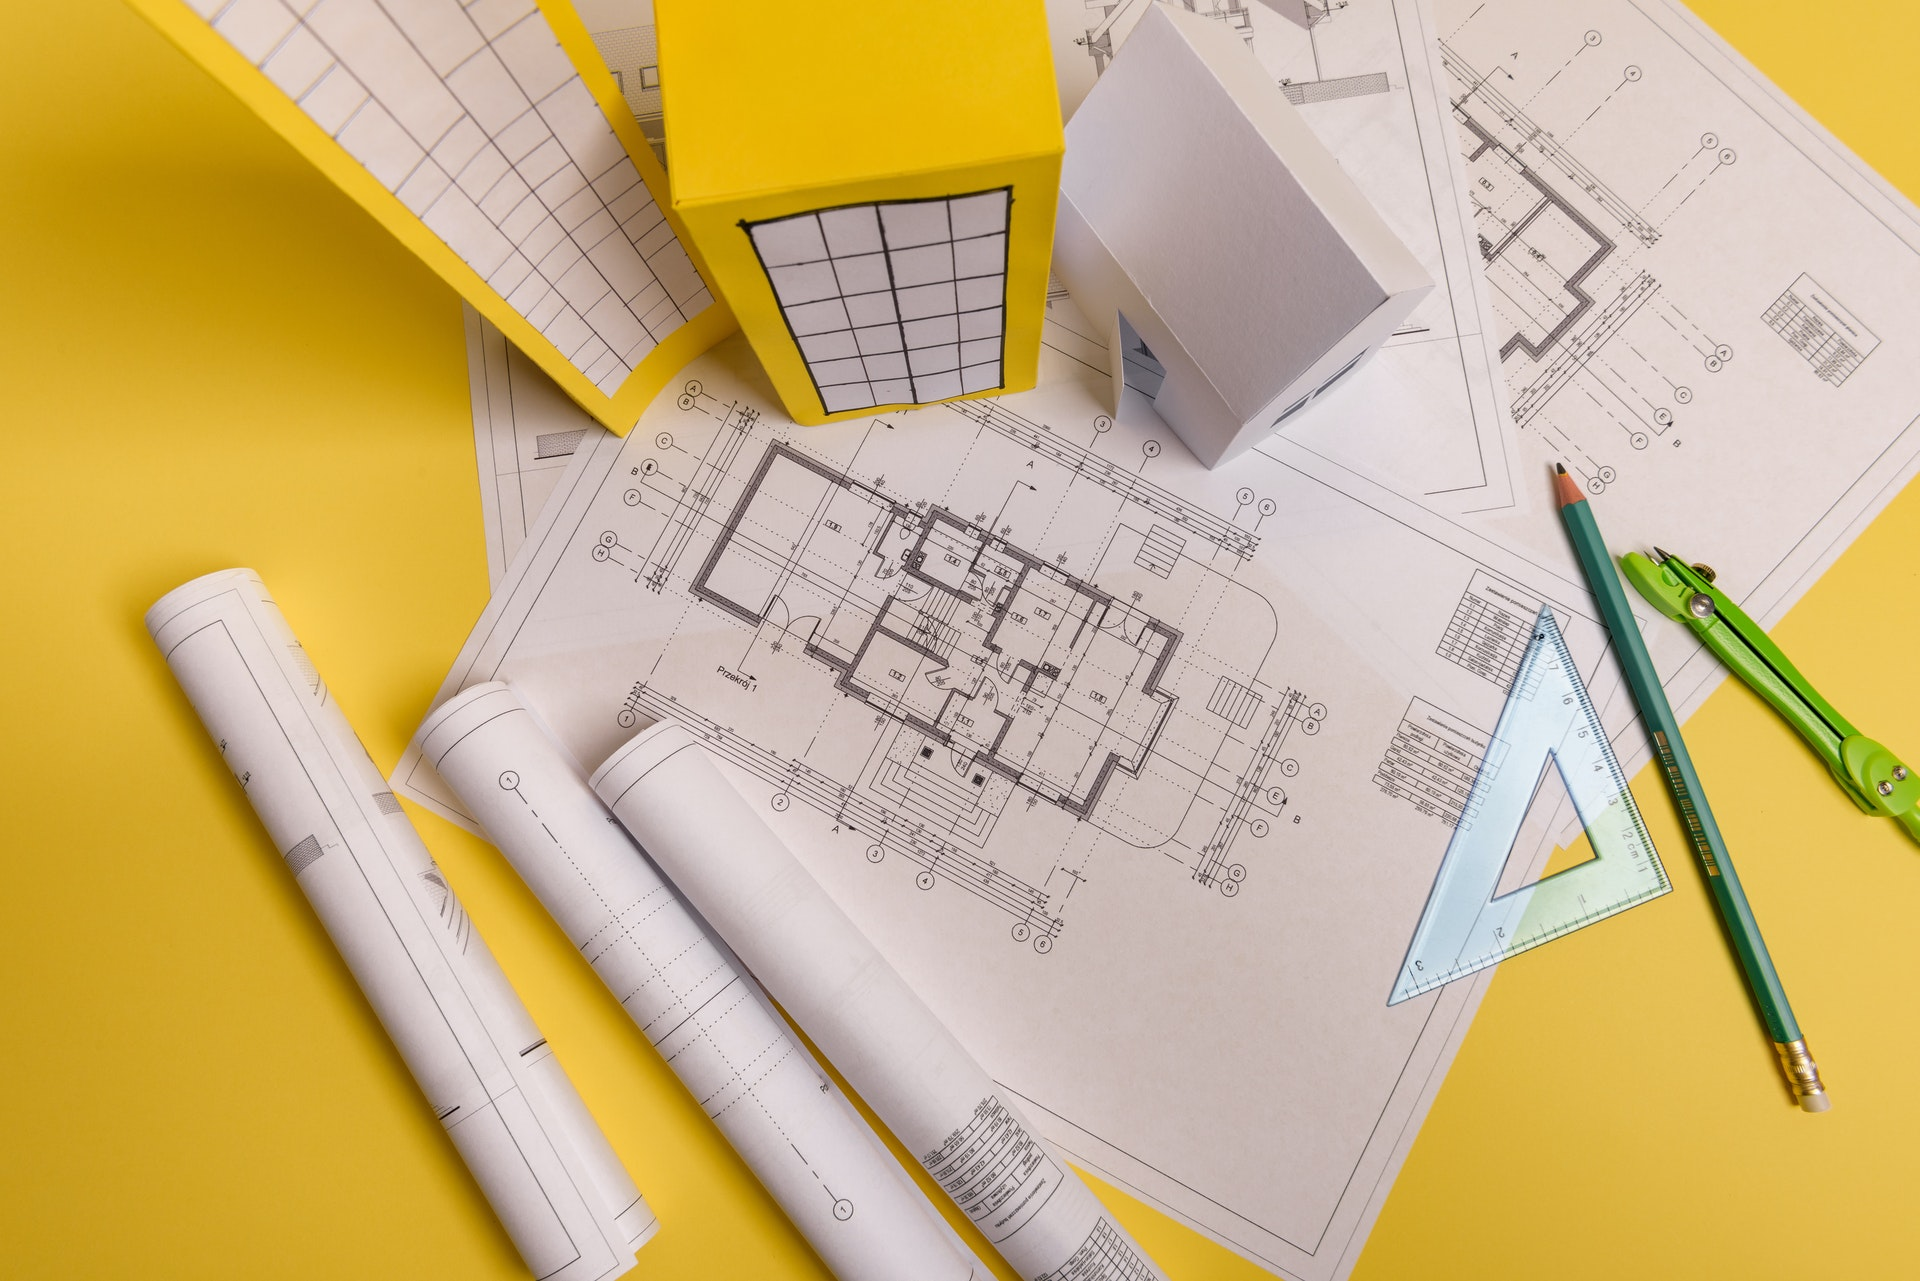 Yellow architecture plans with pencil